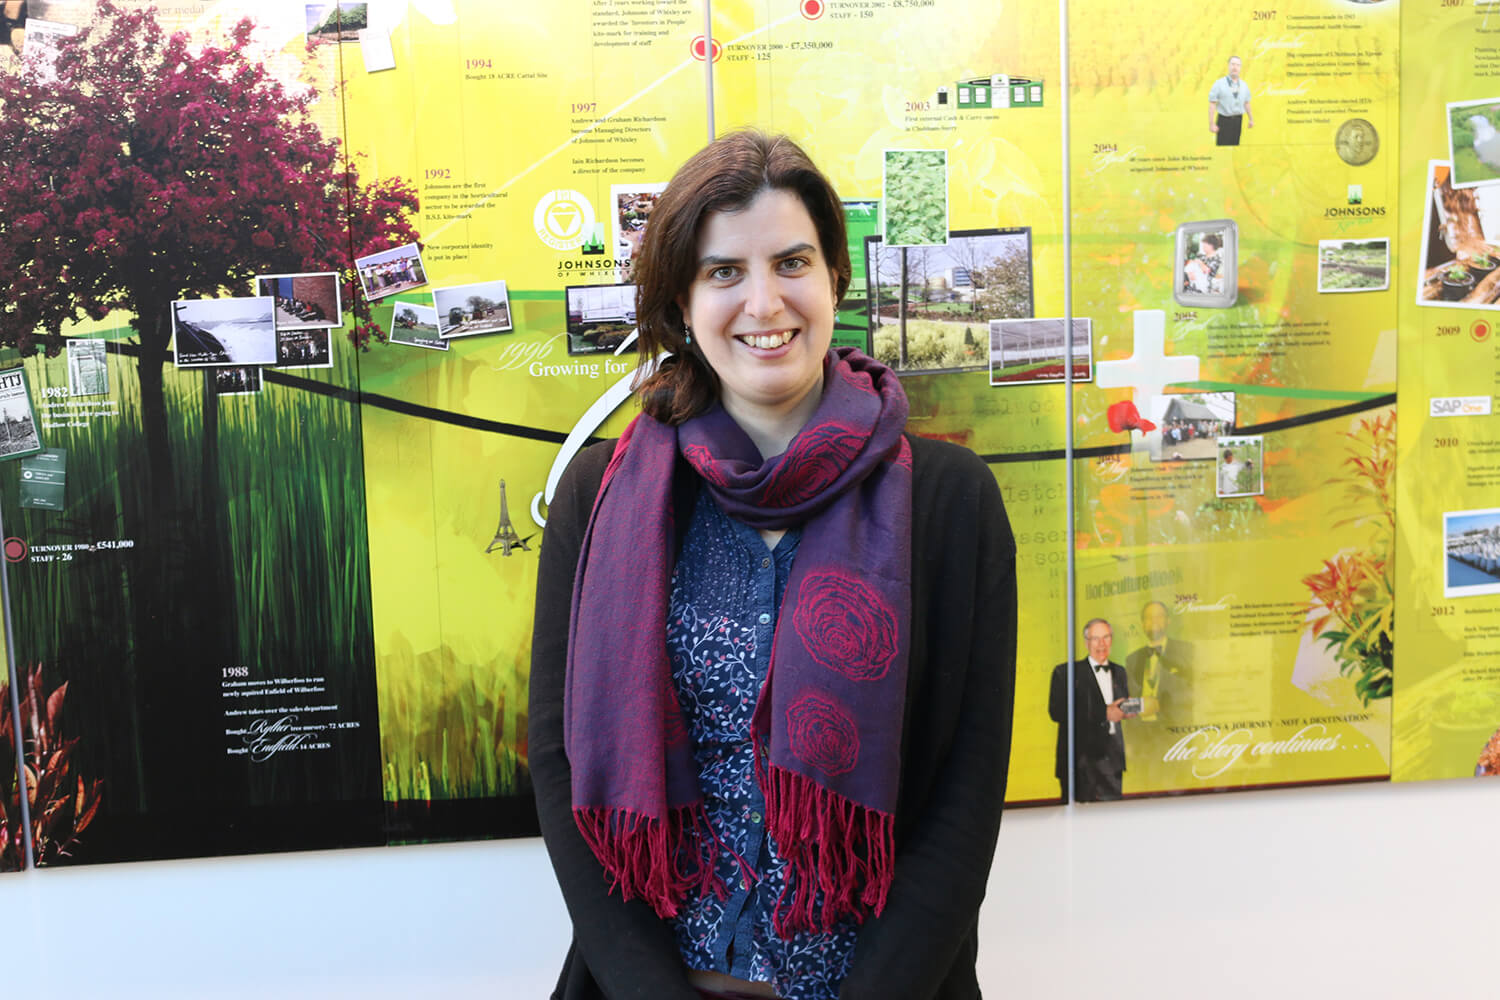 A warm welcome to our 'Plant Health Specialist' Rebekah Robinson